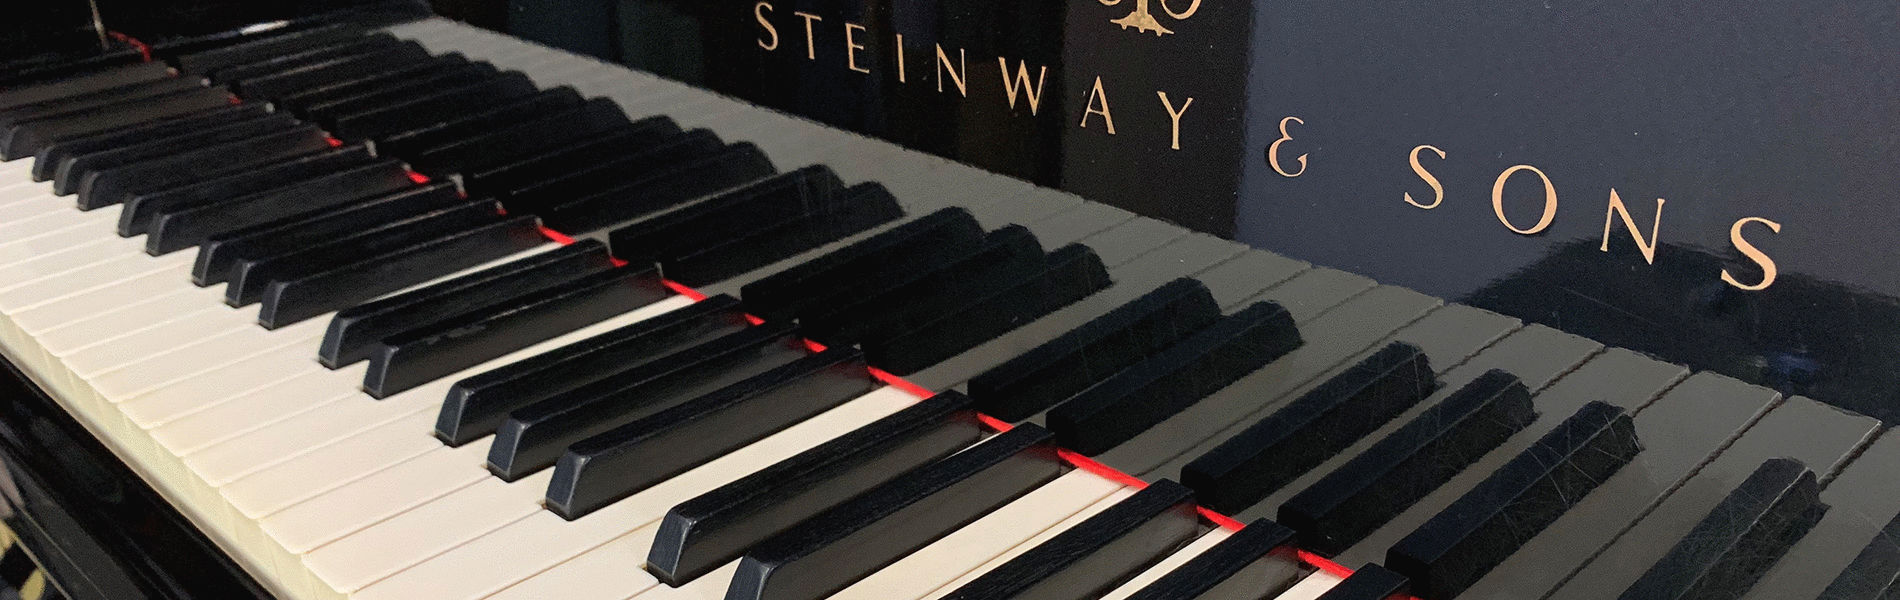 Steinway And Sons C-227